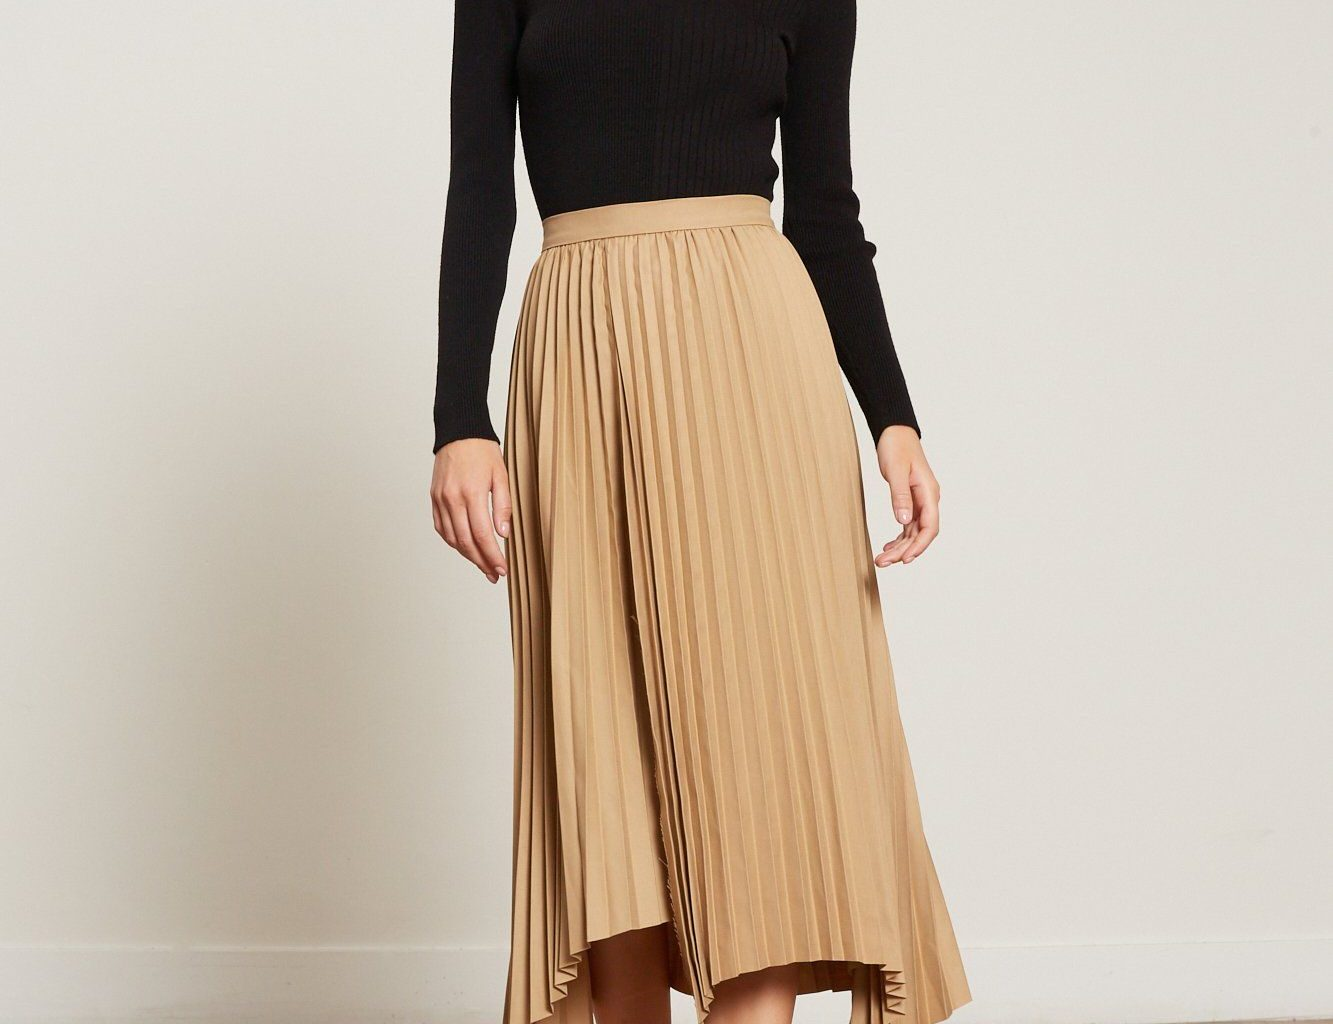 How Can You Choose the Right Size of Skirt?